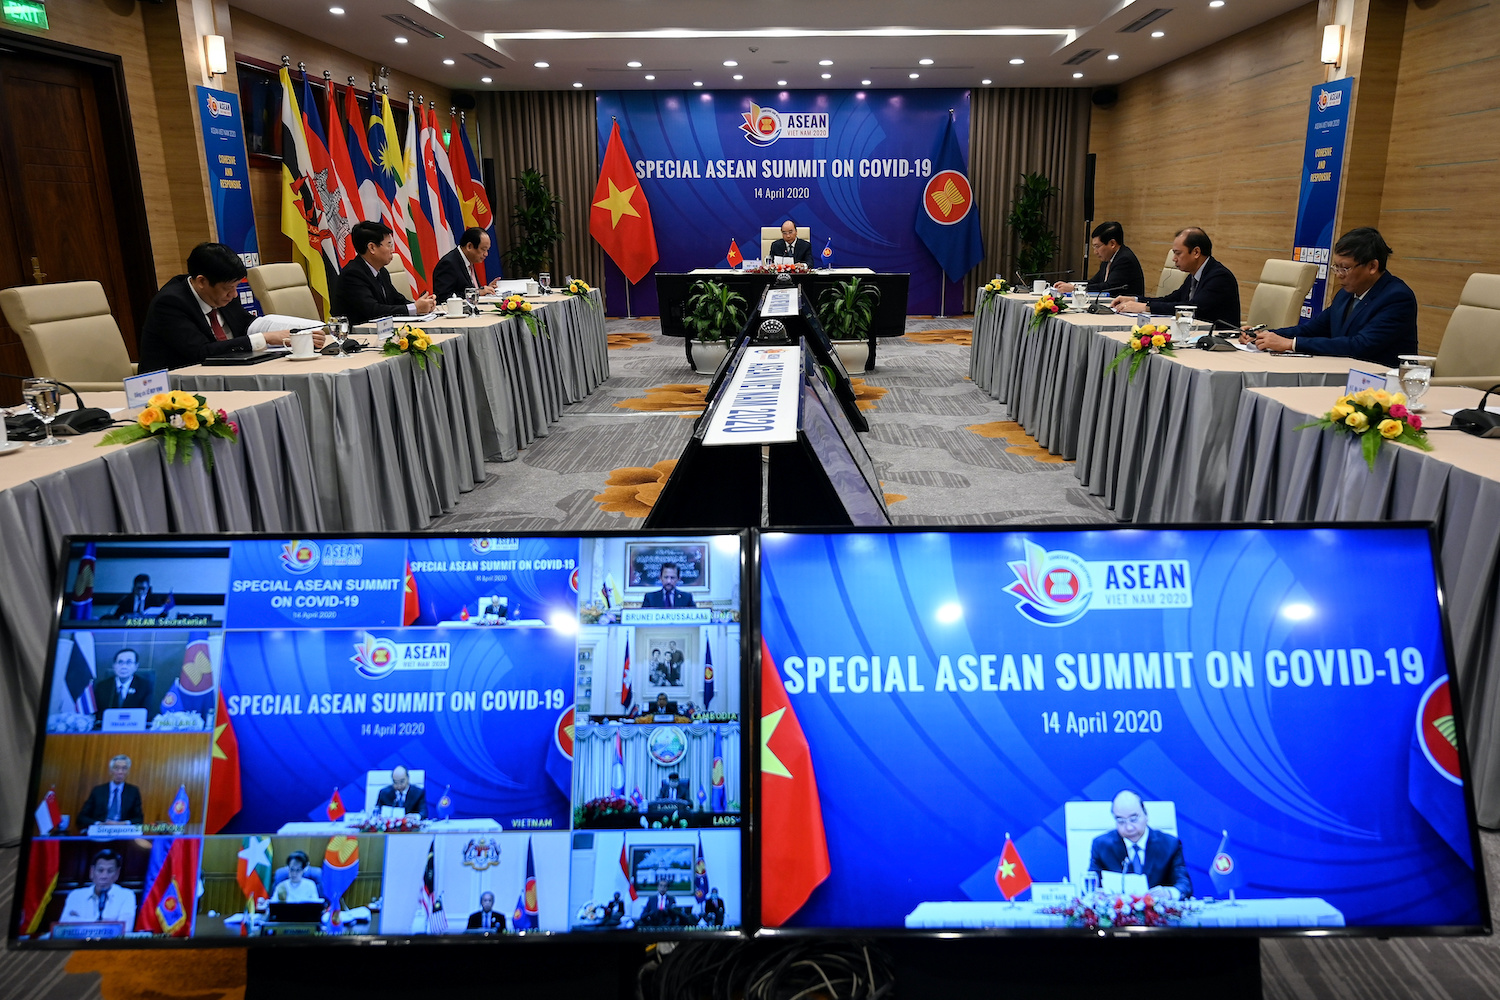 Vietnamese Prime Minister Nguyen Xuan Phuc addresses a video conference of Asean leaders on Covid-19 in April. Their annual summit later this month will also be a virtual one. (Reuters File Photo)